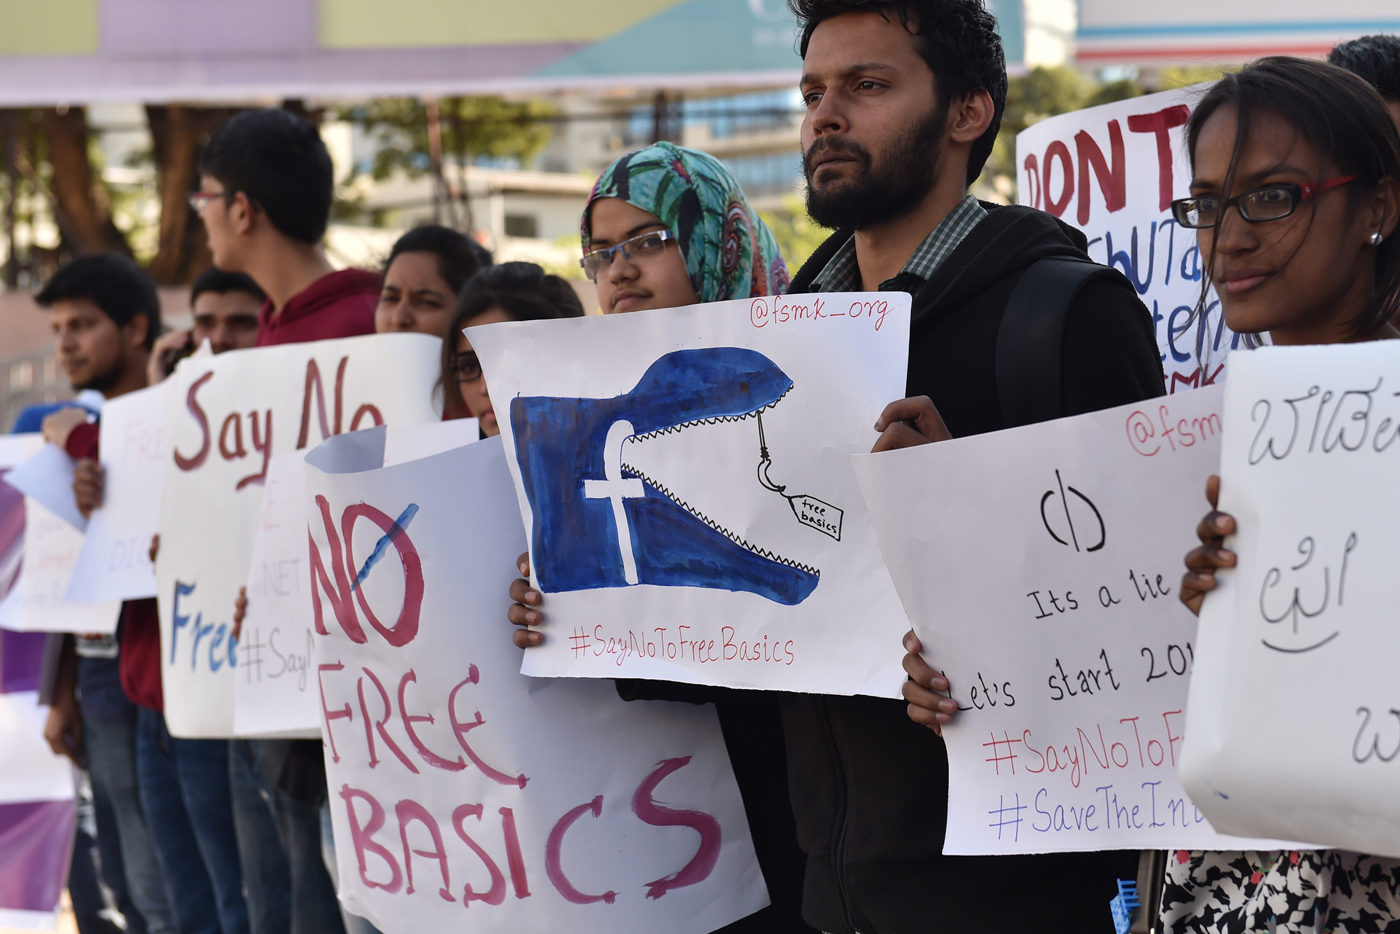 Facebook's Free Basics program did not go over well in India.